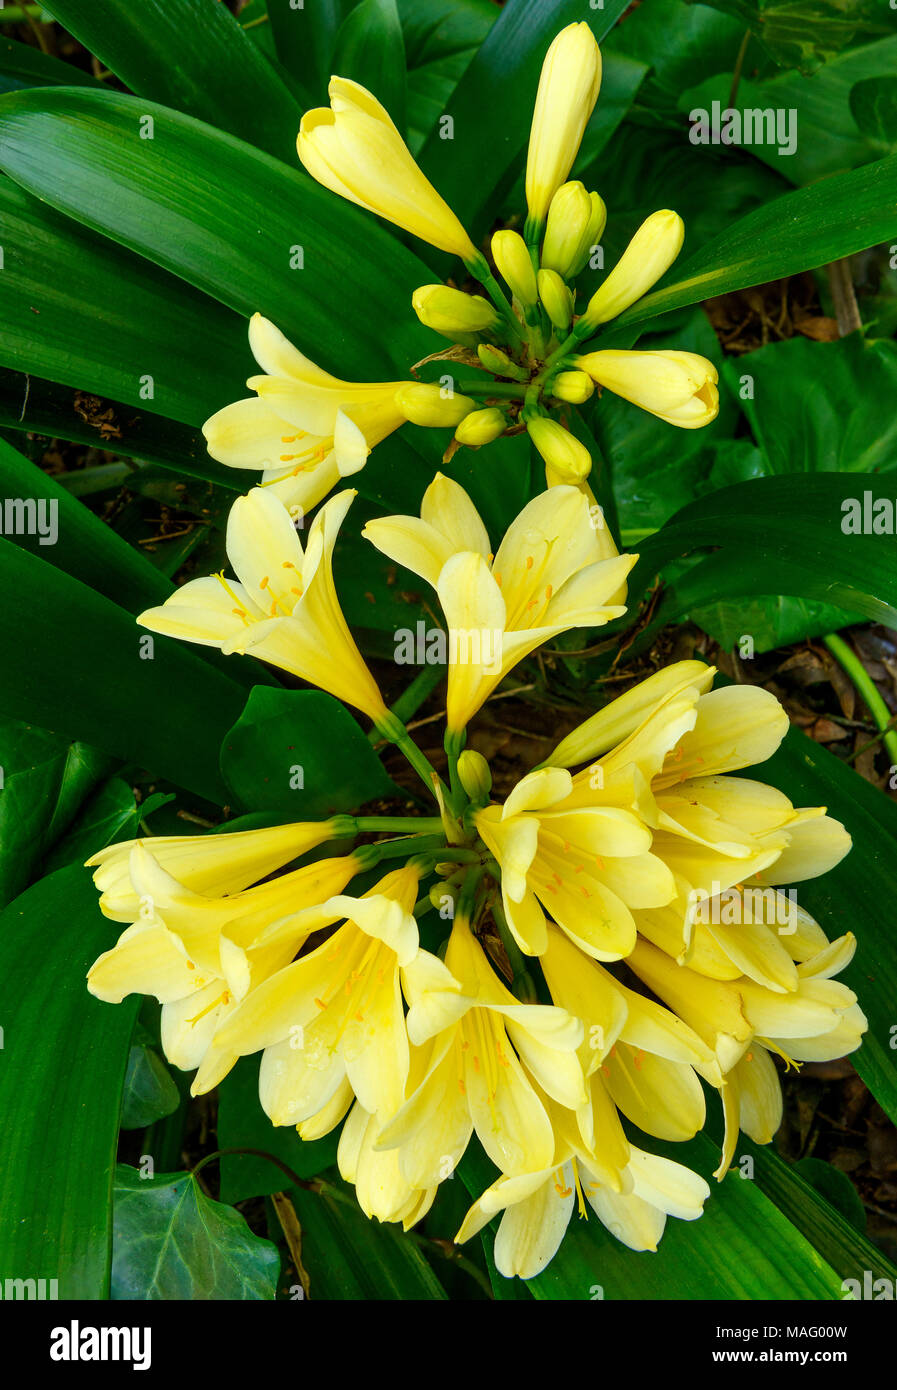 Clivia, Amaryllidaceae, Clivia miniata, Kaffir Lily, Cypress Garden, Mill Valley, California - Stock Image